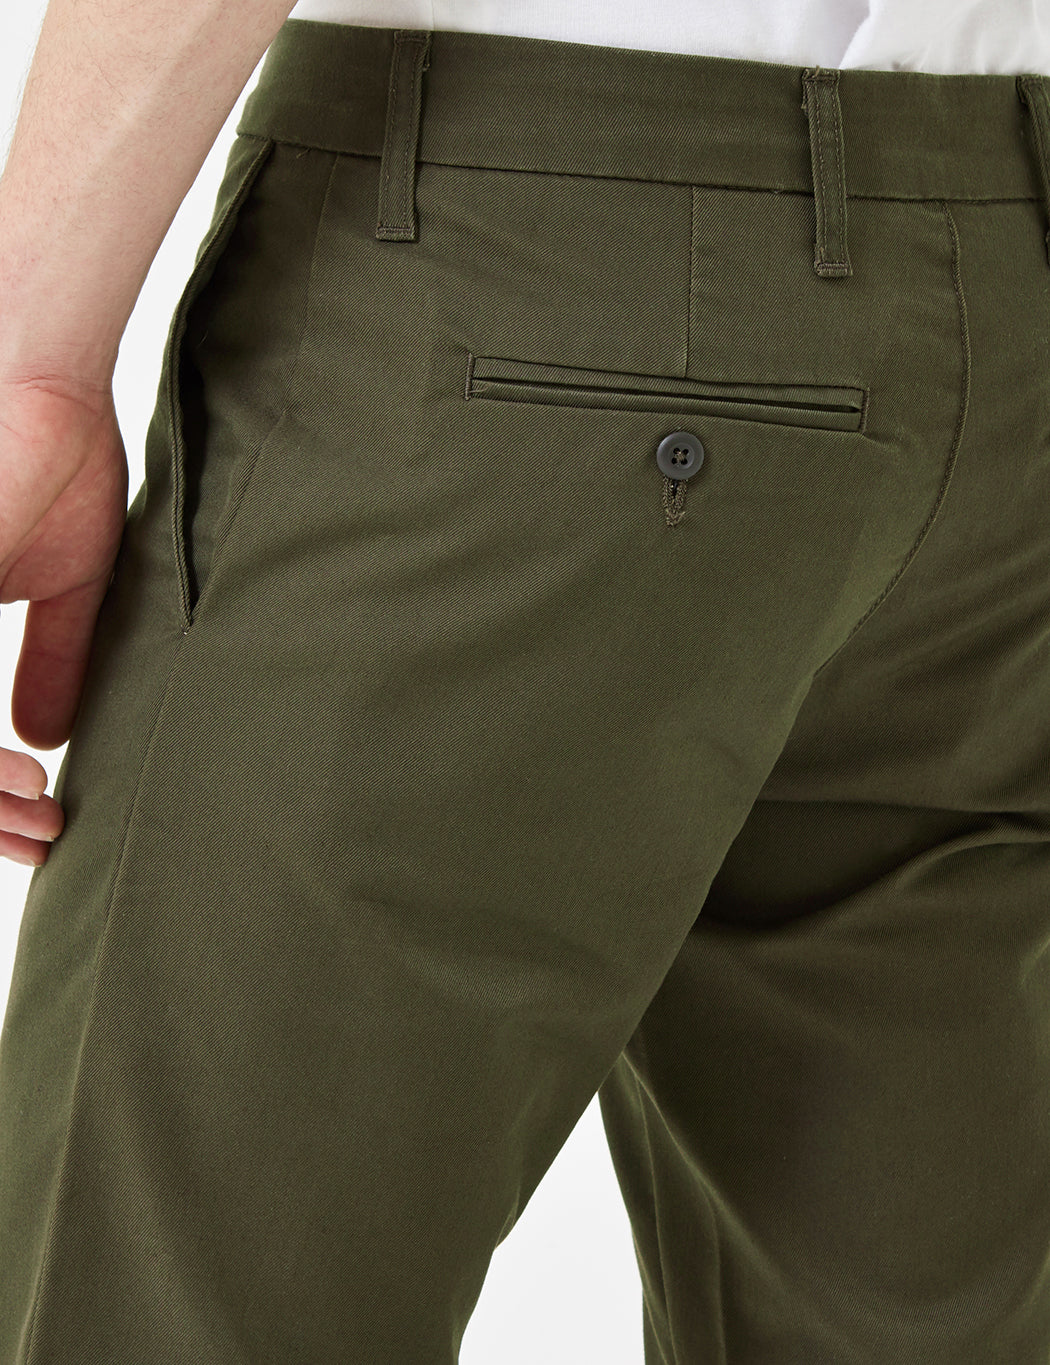 Carhartt Sid Pant Chino (Slim) - Cypress Green